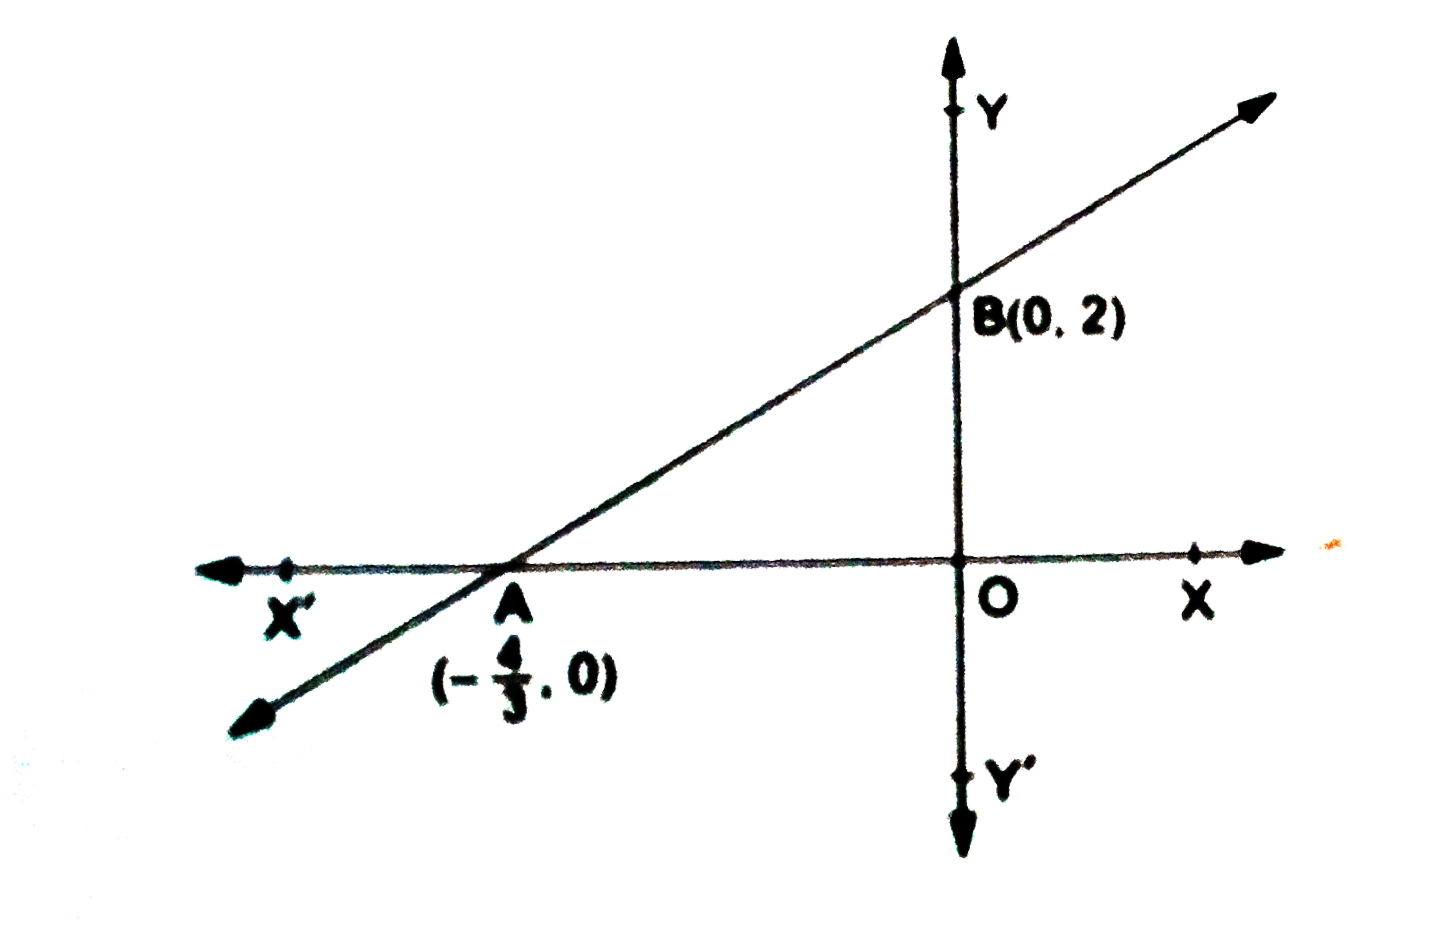 How To Find The X Intercepts And Y Intercepts Of An